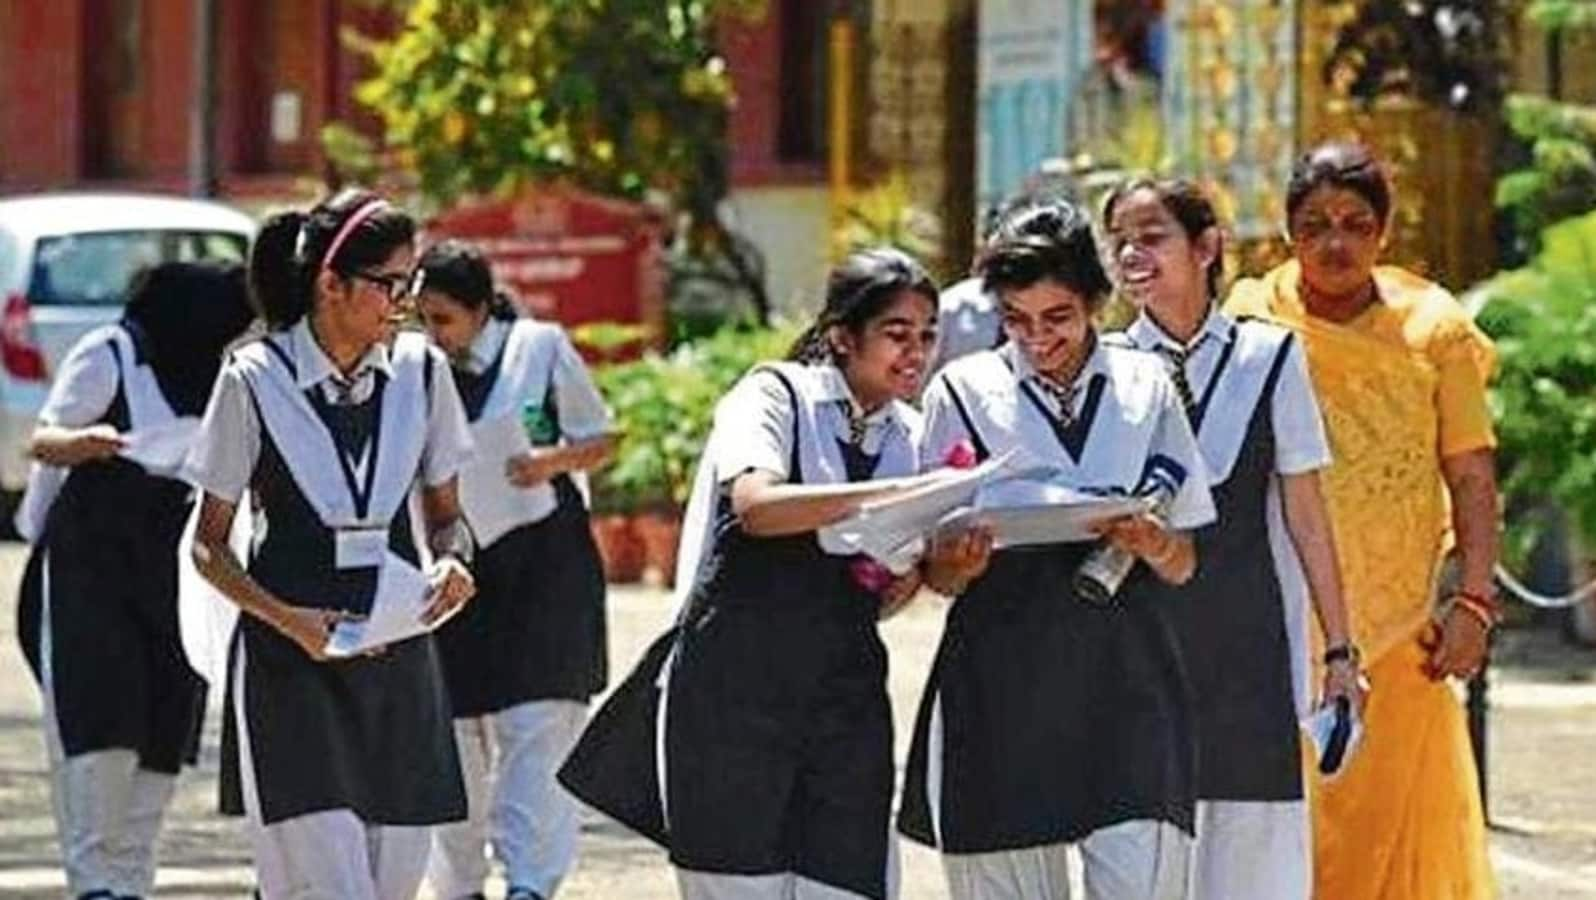 UP Board Exam 2021: Class 10, 12 special exams begin on Sept 18, schedule here